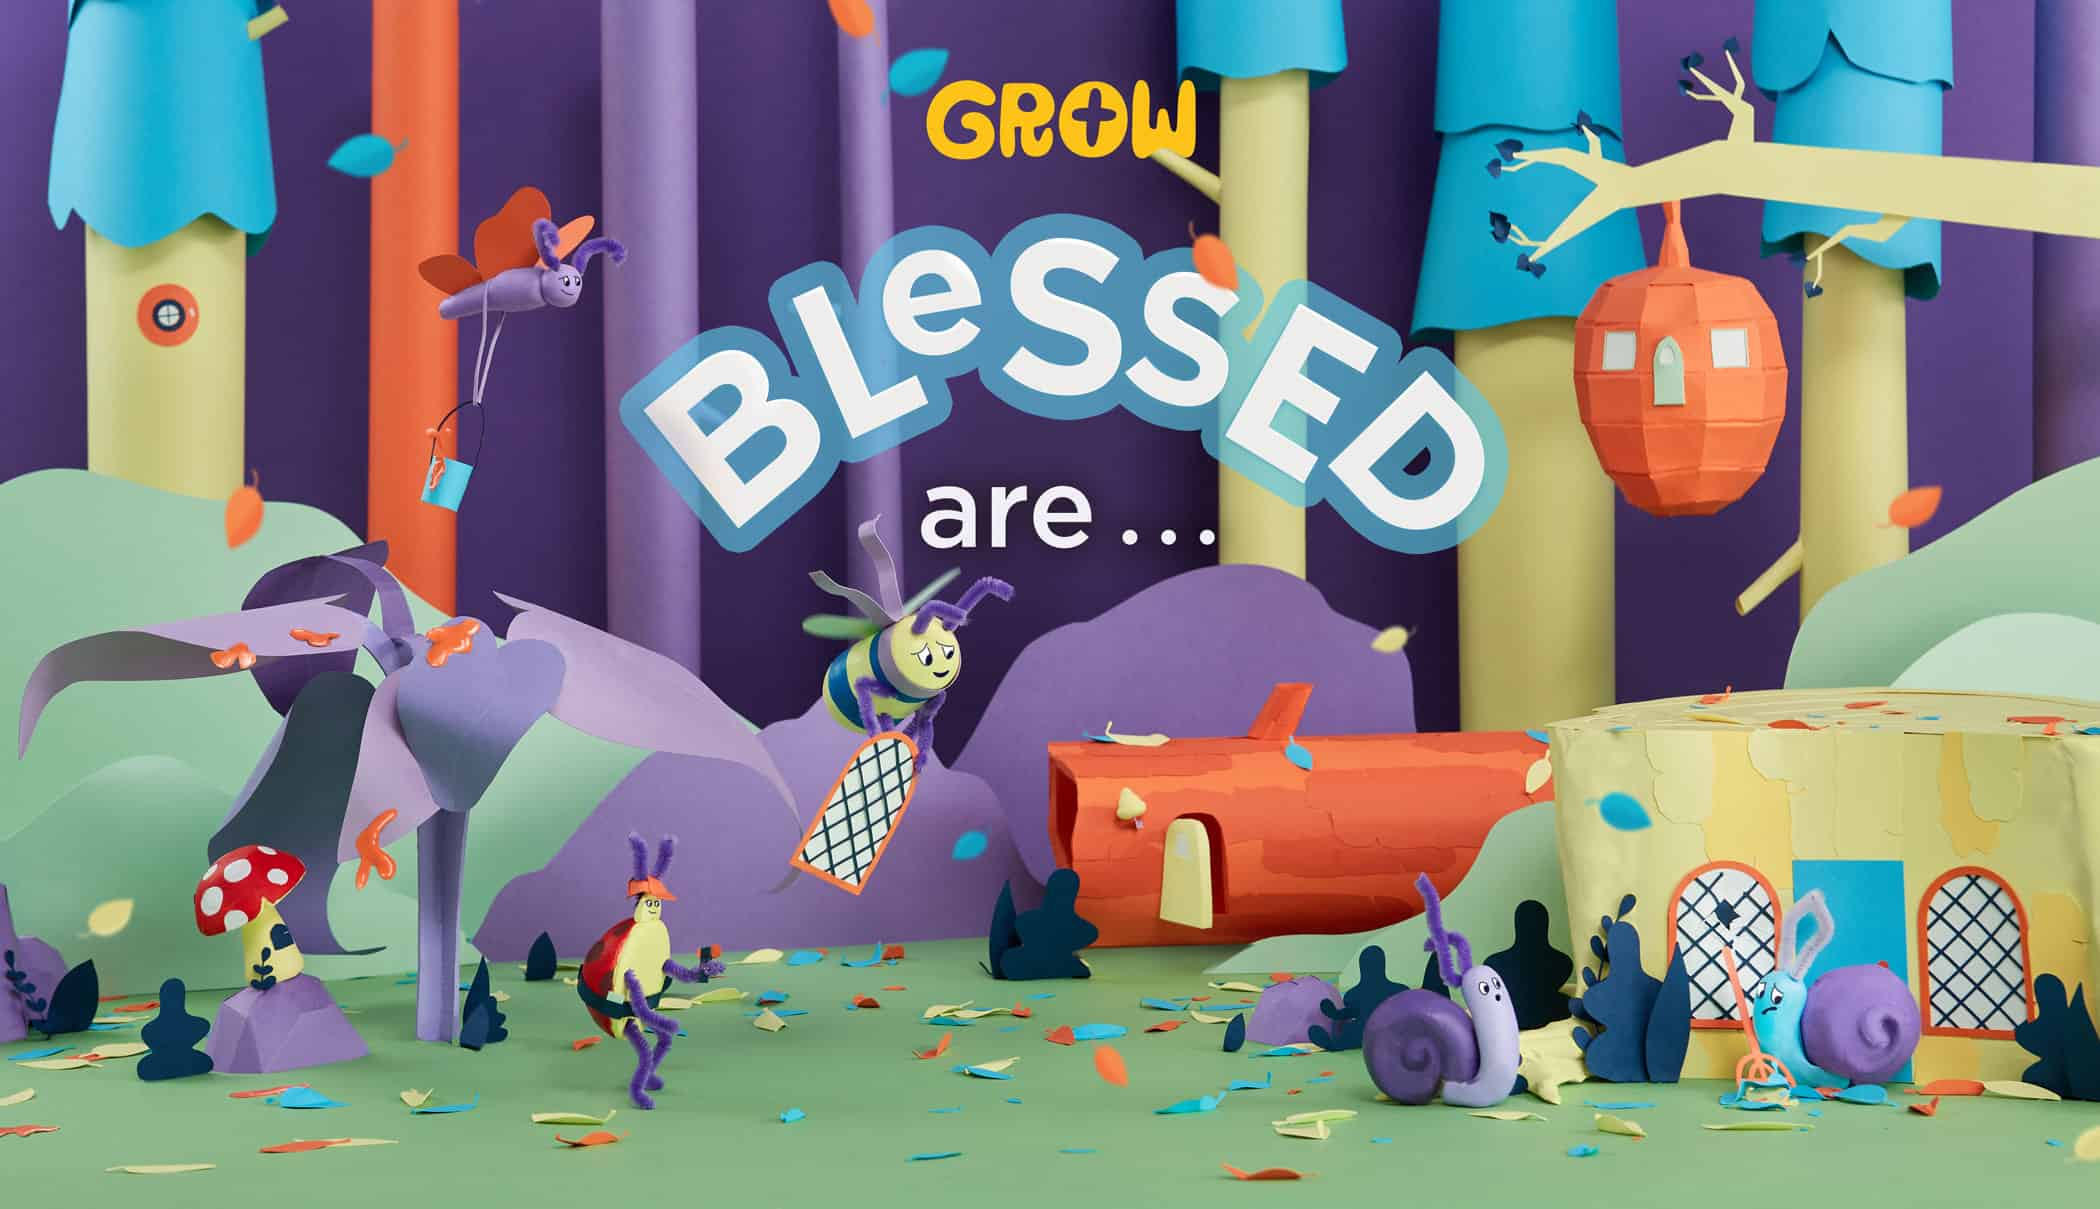 Blessed-3